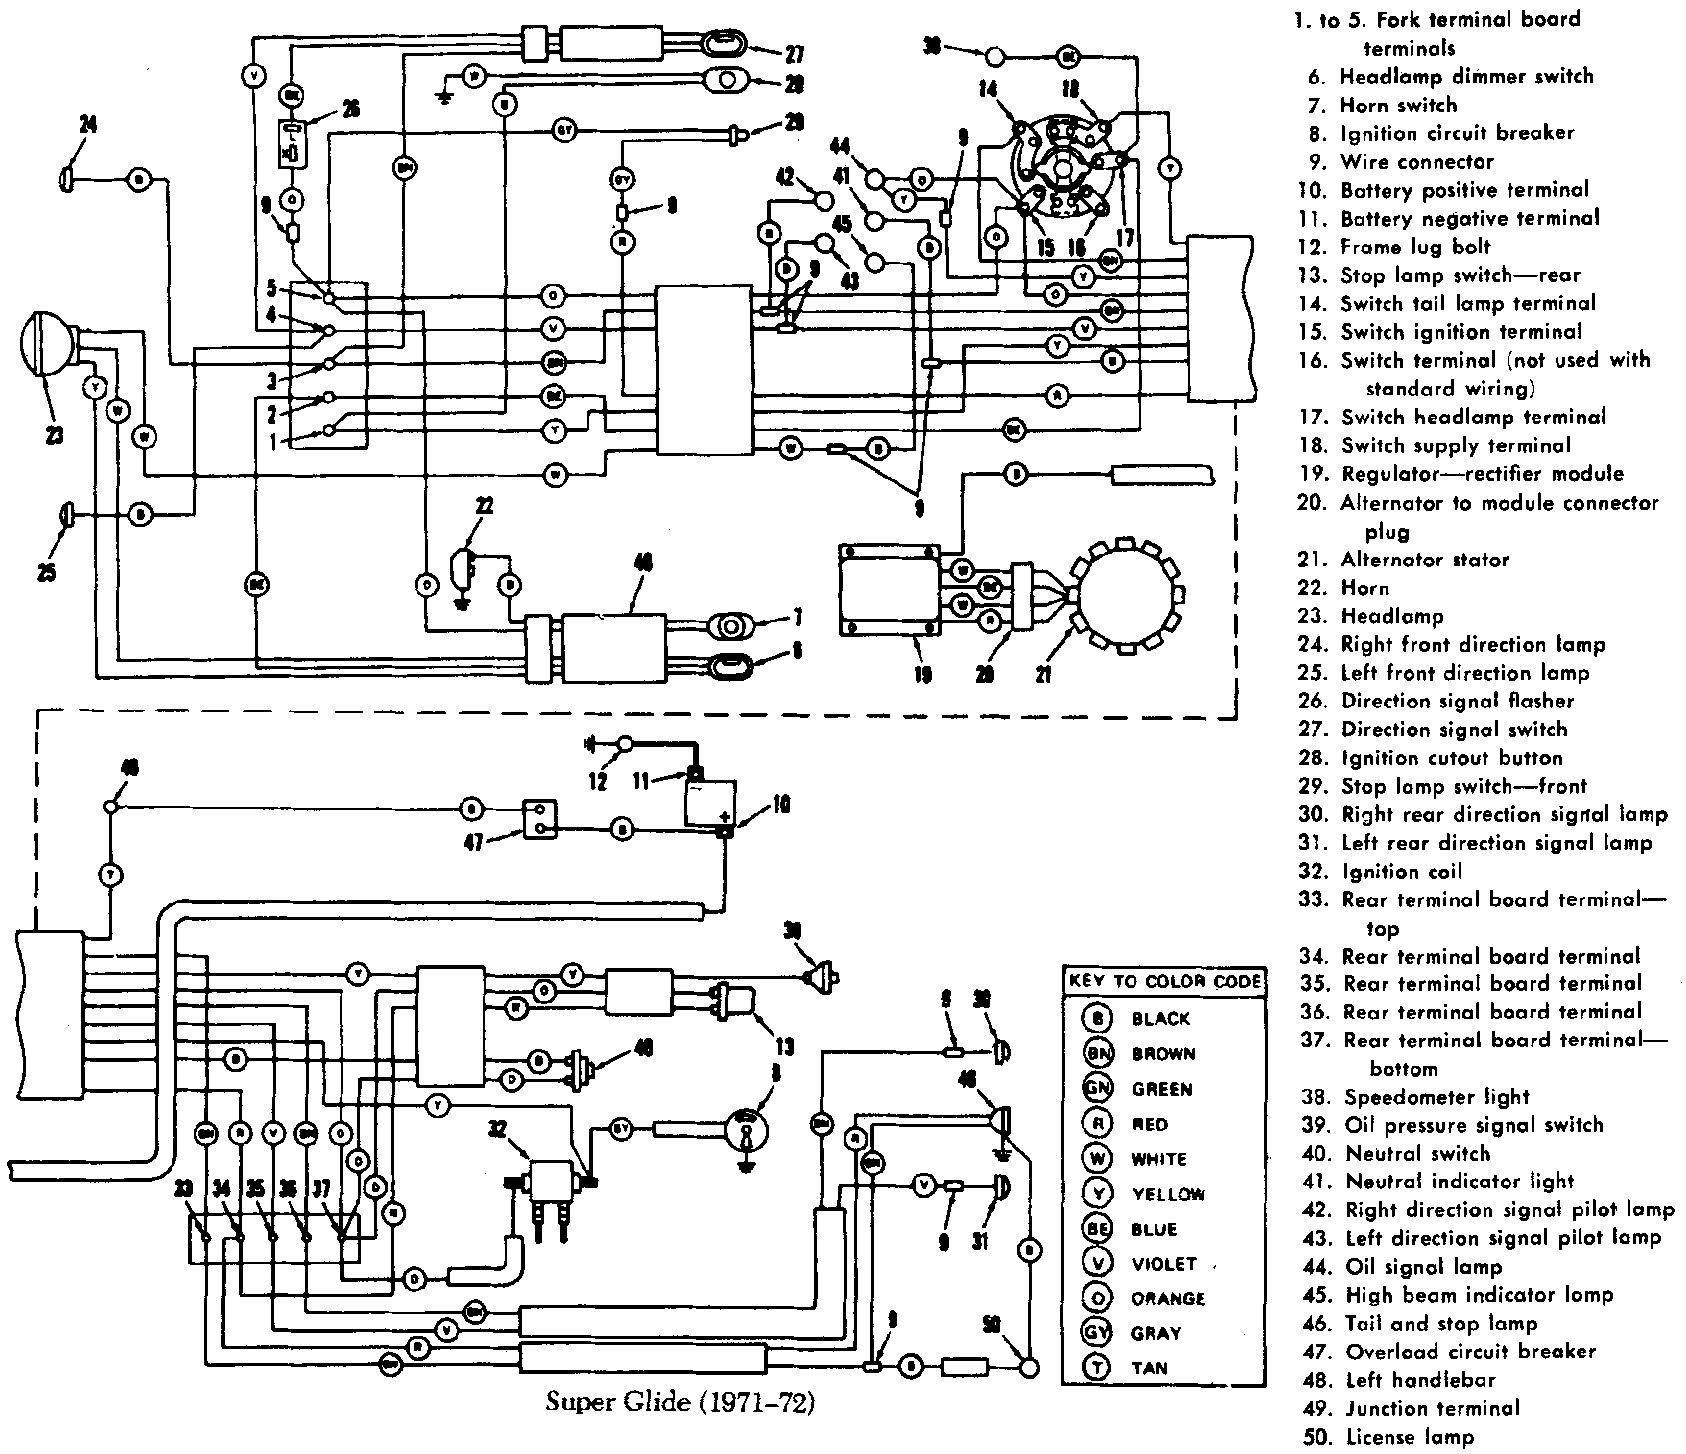 hight resolution of harley davidson headlight wiring diagram with 5 trusted wiring harley davidson softail custom wiring diagram 1992